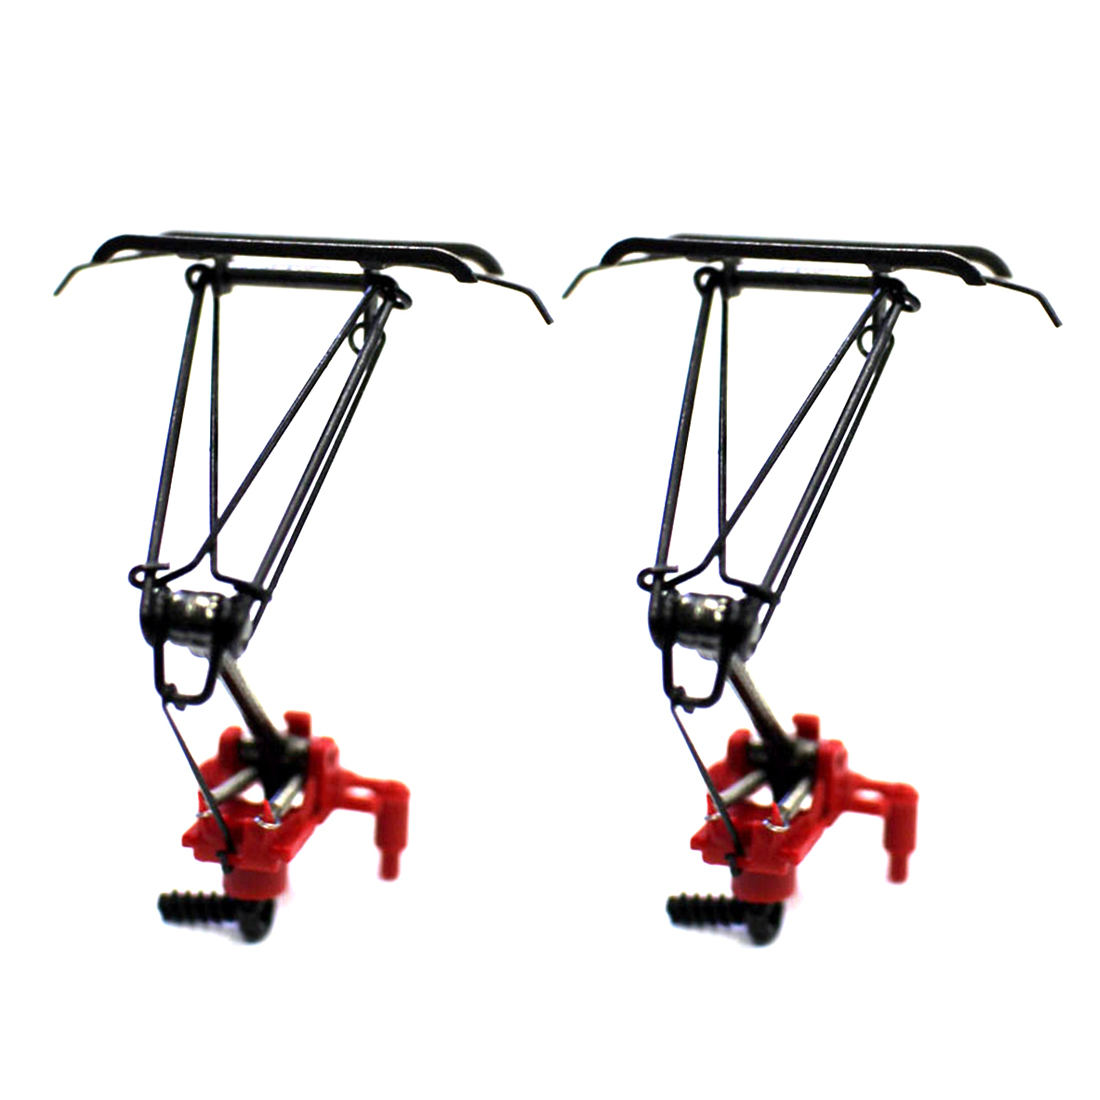 2Pcs/set 1:87 HO Scale Train Electric Traction Pantograph Train Arm Bow For Sand Table Model